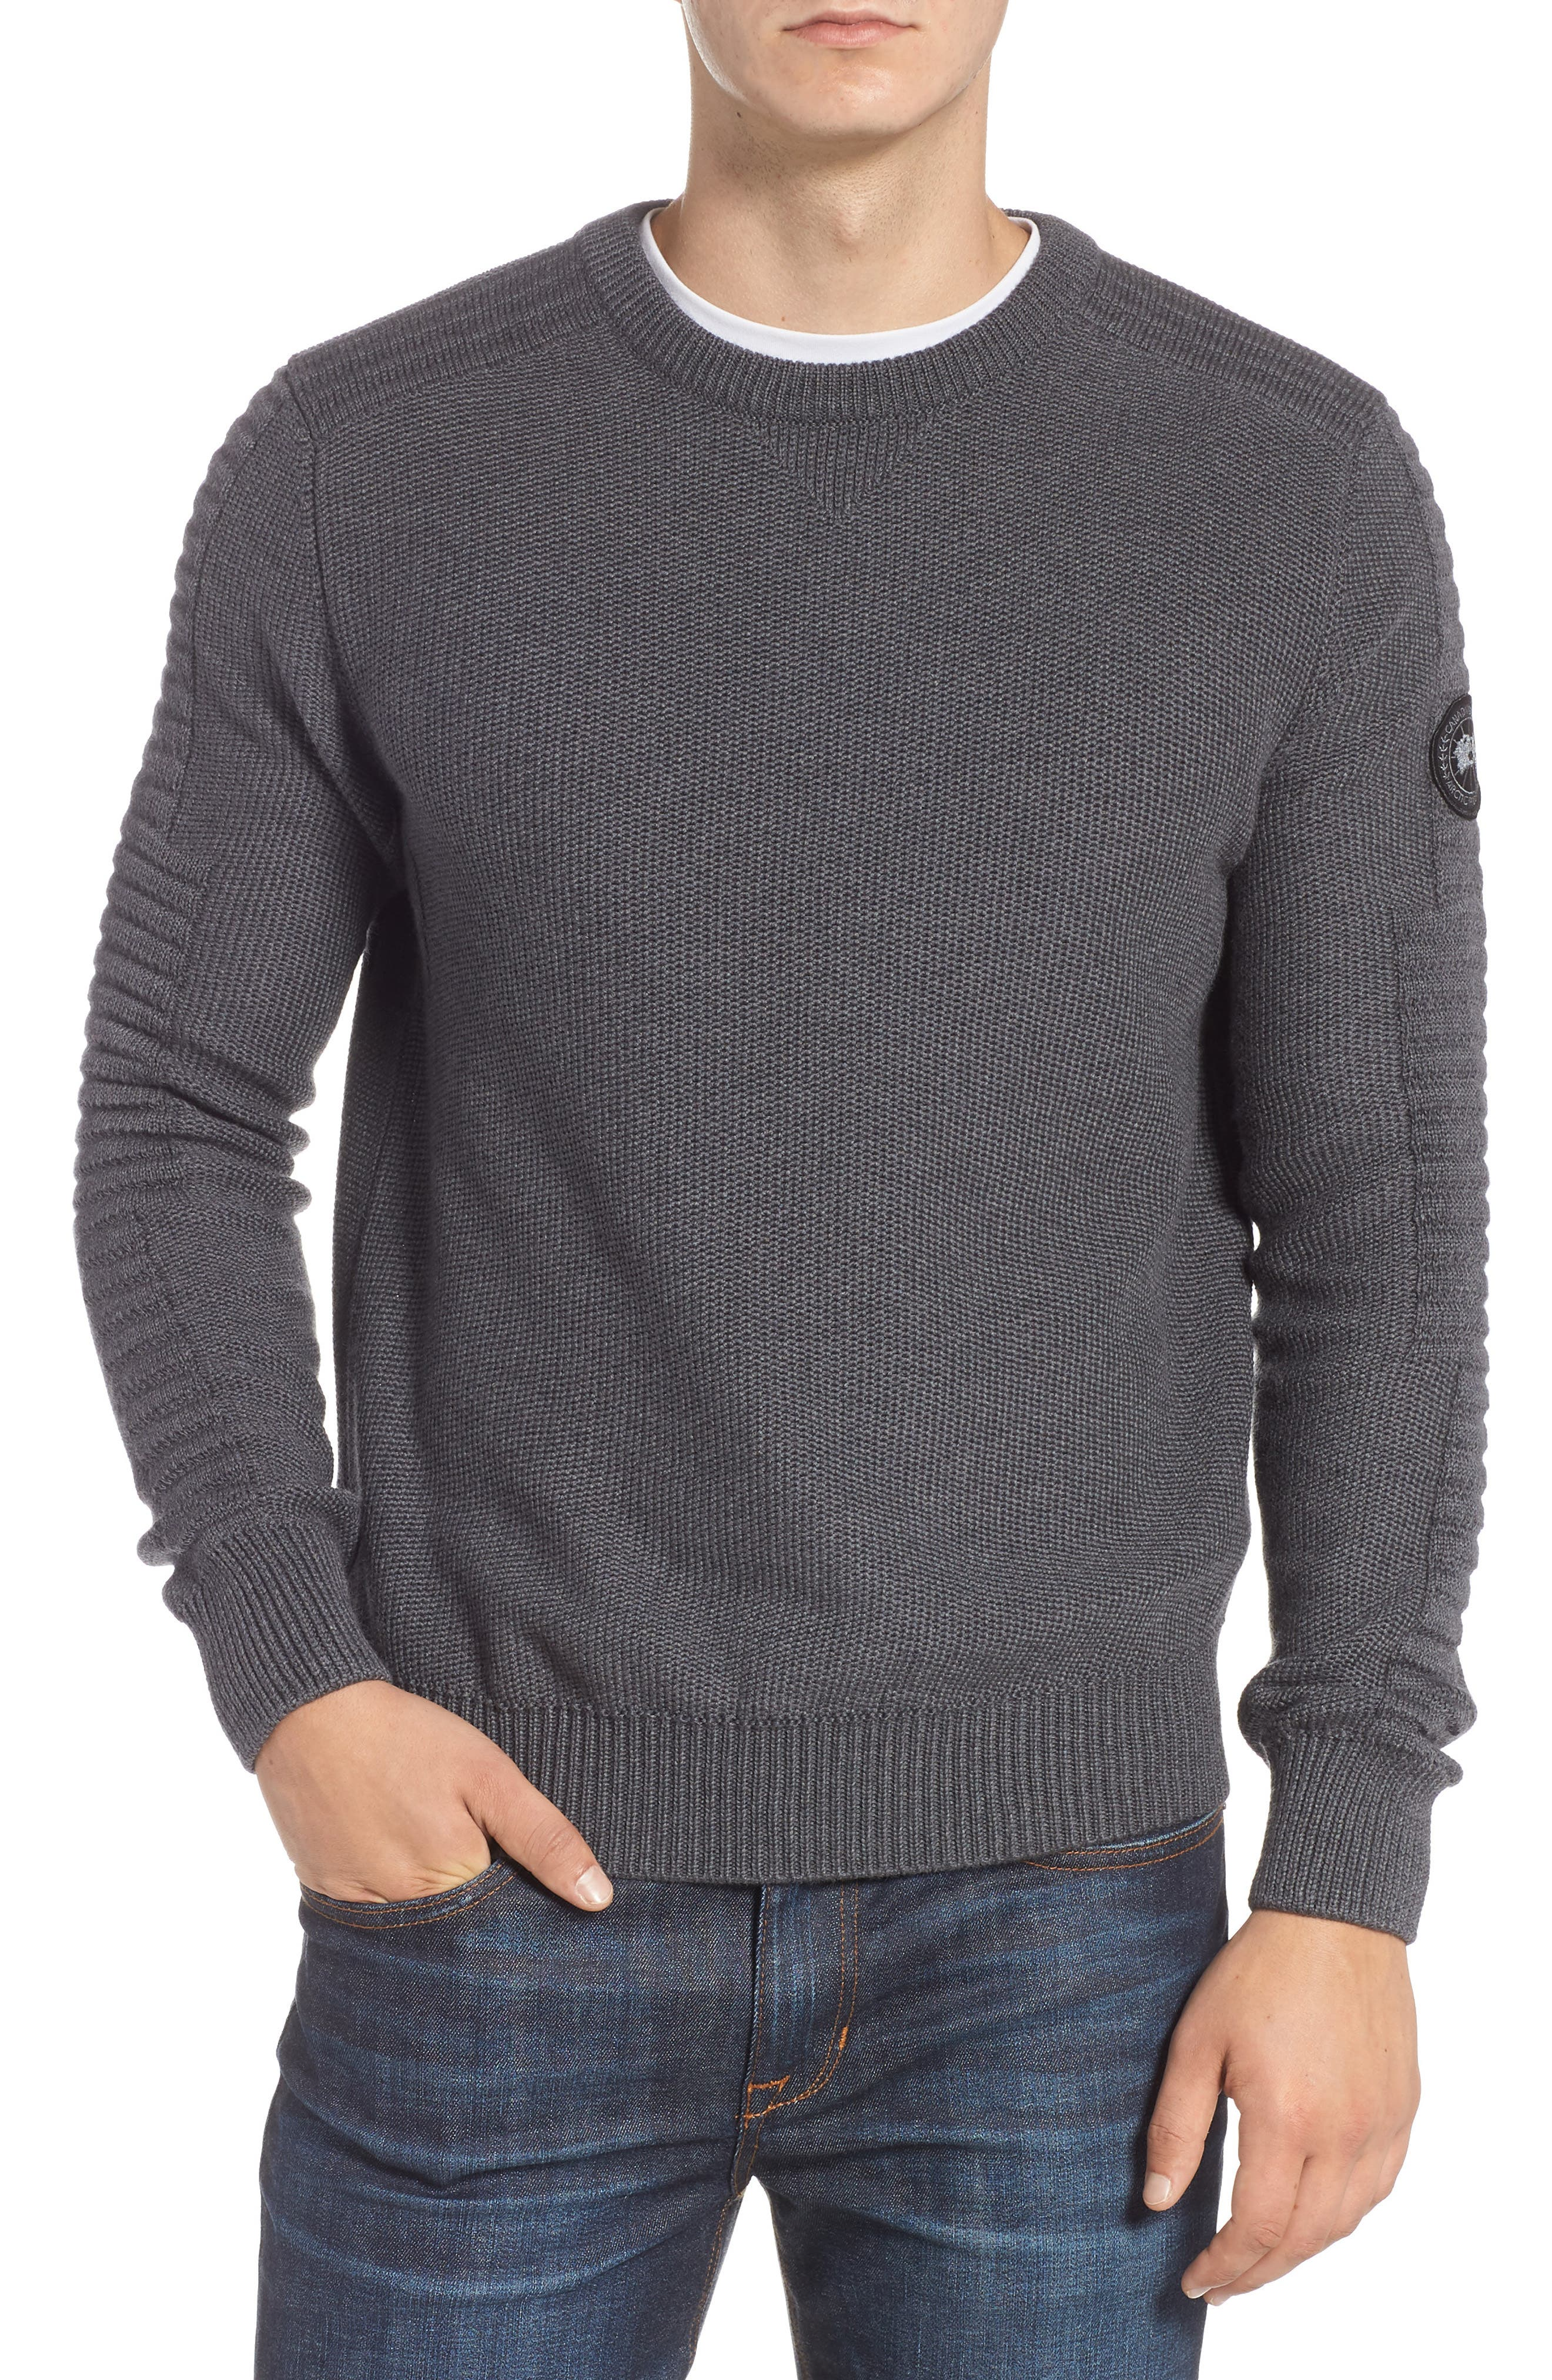 Paterson Mixed-Stitch Pullover Sweater in Iron Grey